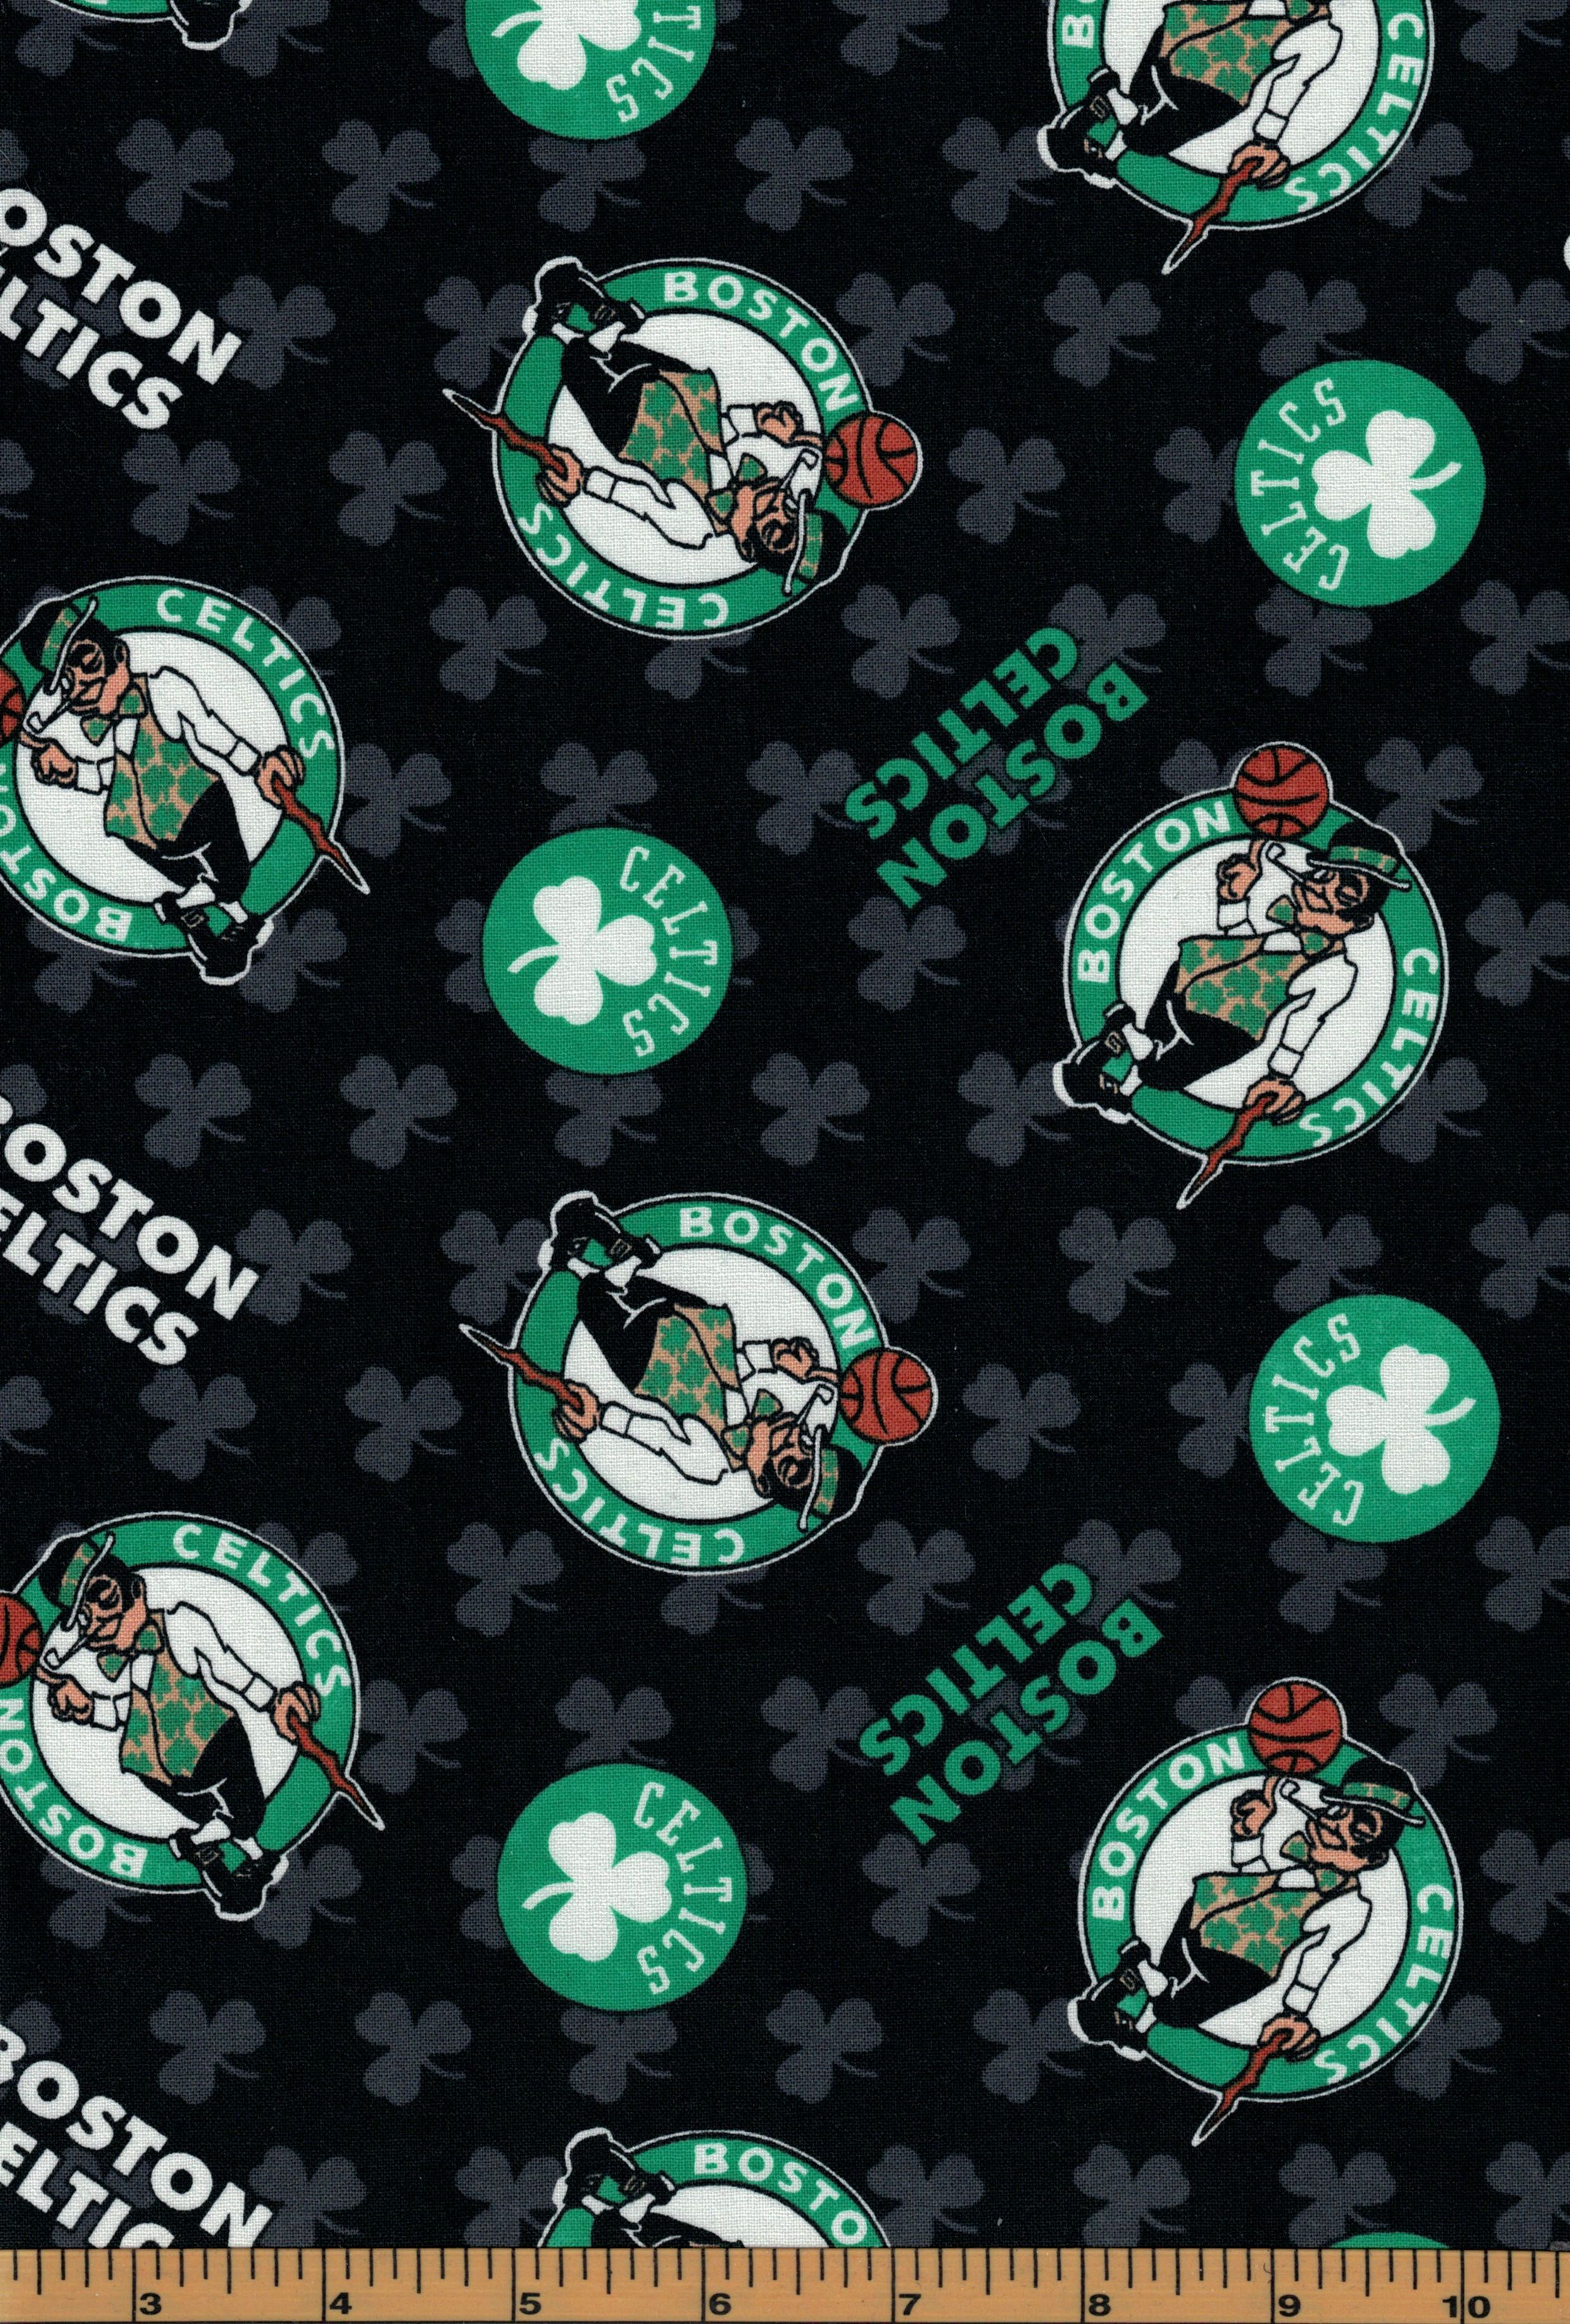 Boston Celtics Basketball Nba Fabric 100 Cotton Sold By The Half Yard Quilts On The Fly Celtics Basketball Boston Celtics Basketball Boston Celtics